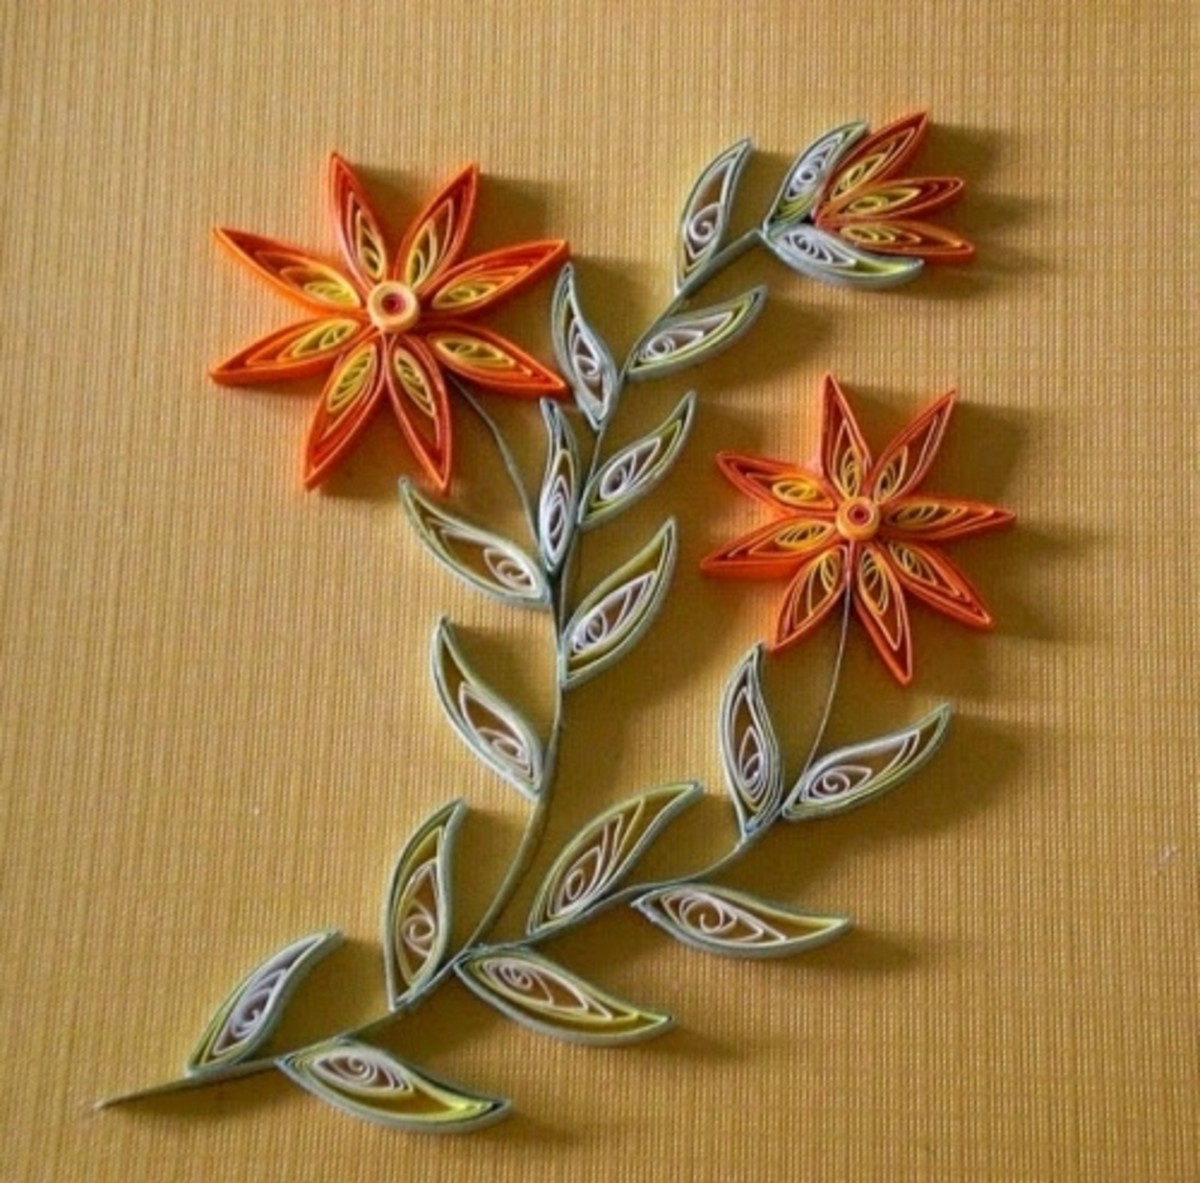 Free quilling patterns and designs hubpages for How to quilling designs